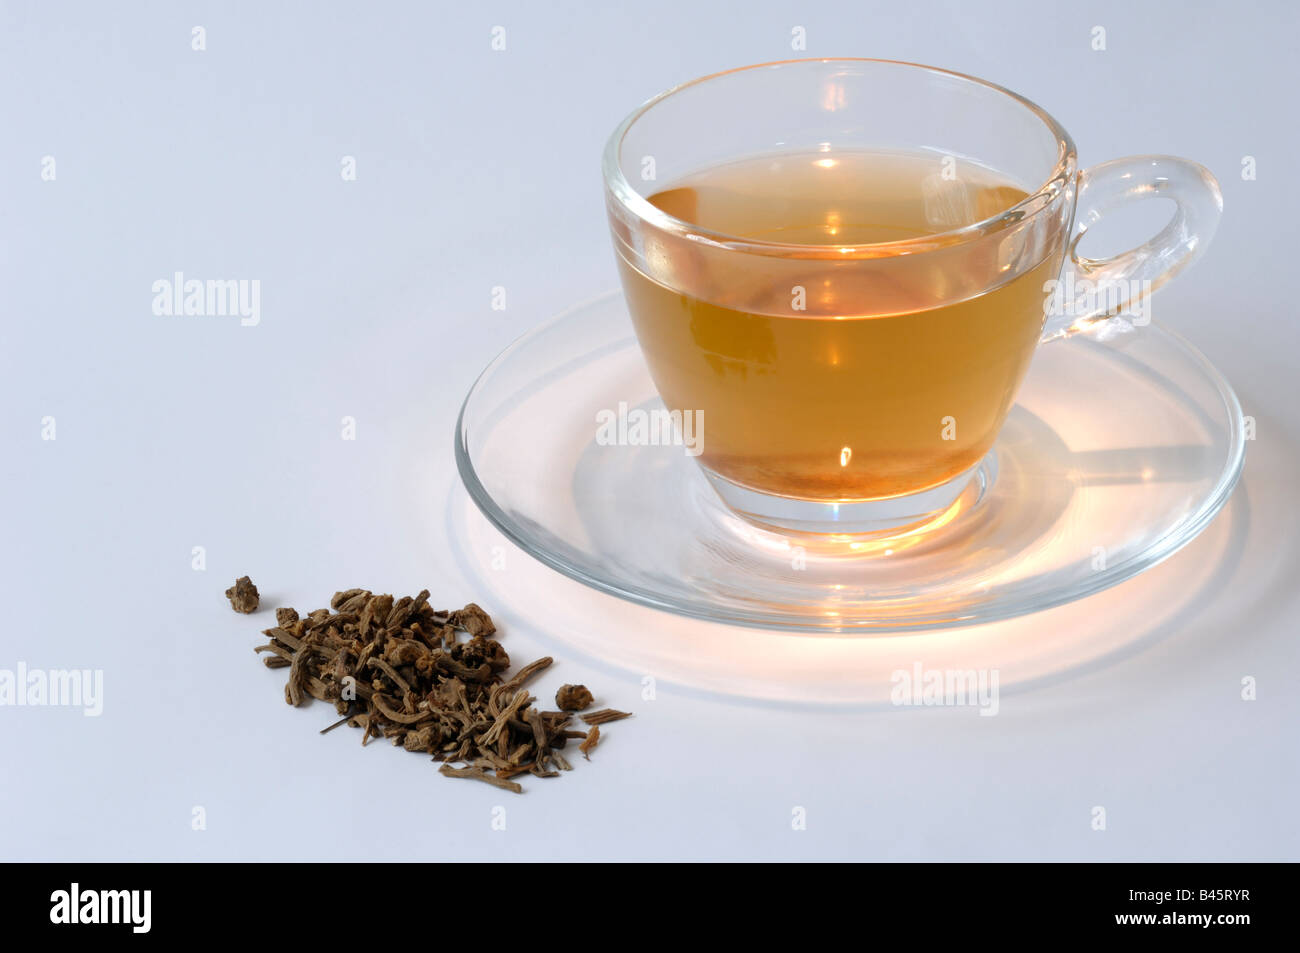 Valerian (Valeriana sp.), dried roots and a cup of tea, studio picture - Stock Image